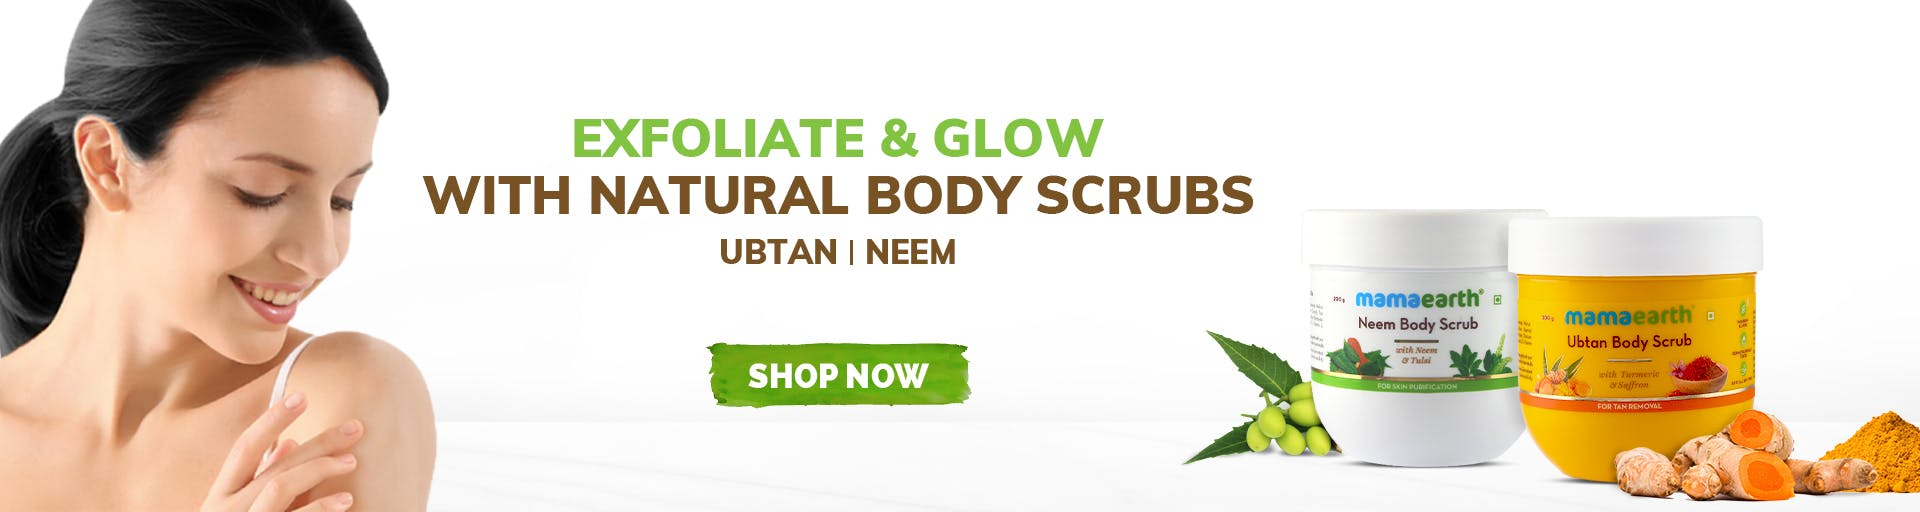 mamaearth.in - Body Scrub starting at just ₹499